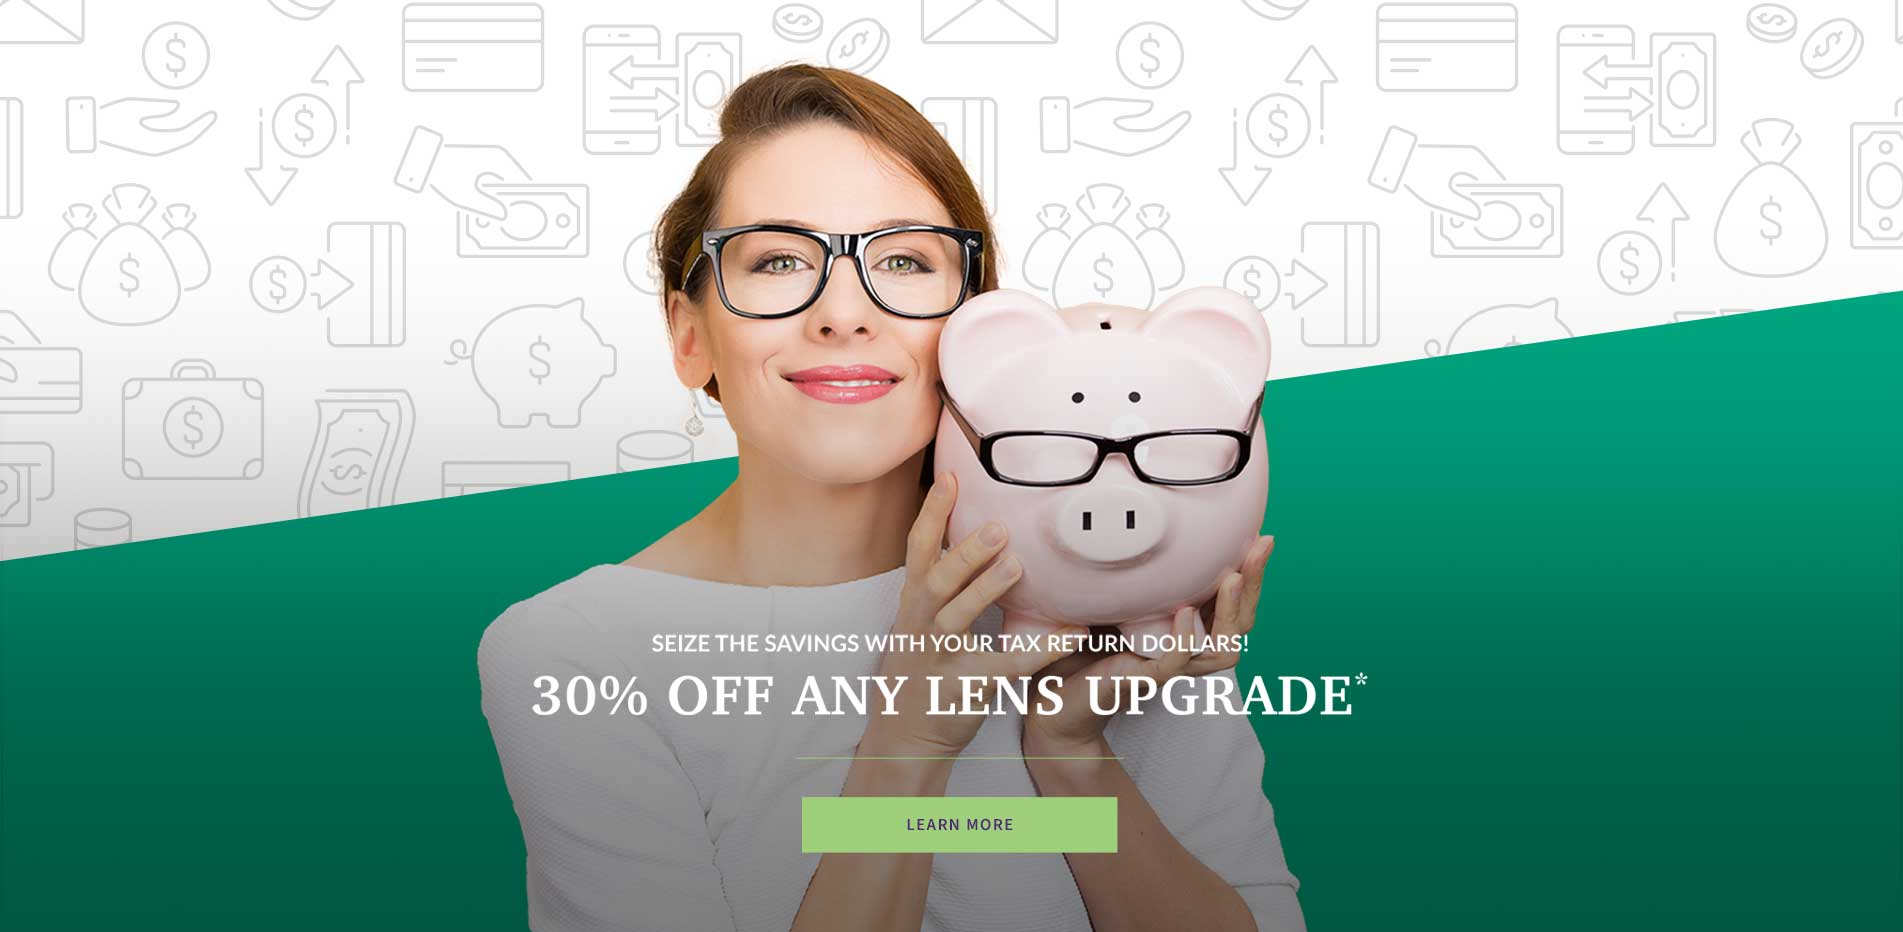 Sieze the savings with your tax return dollars! - 30% Off any Lens upgrade